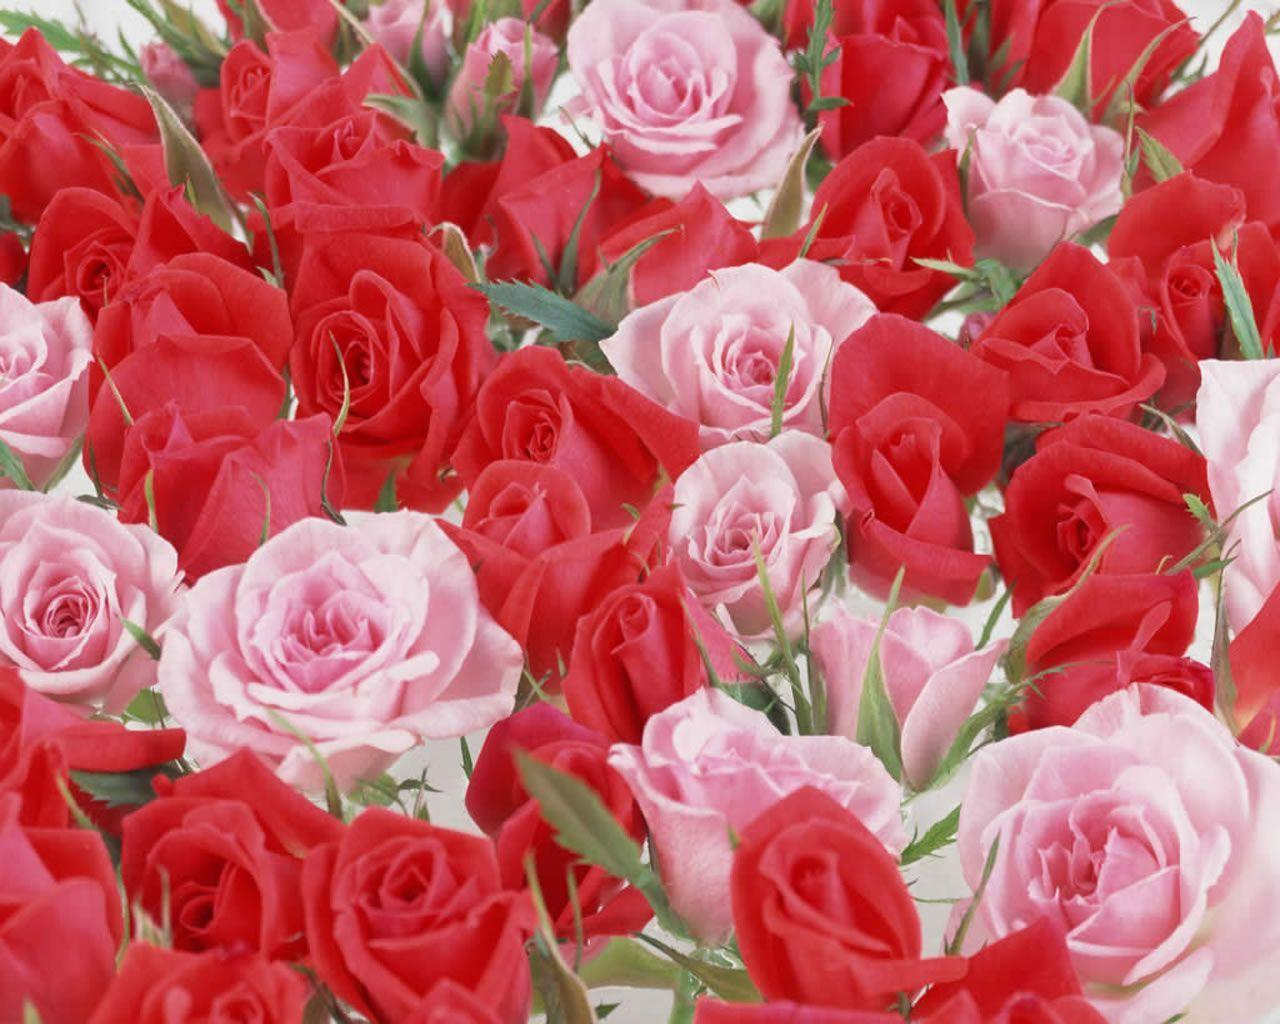 Beautiful rose images and wallpapers 3